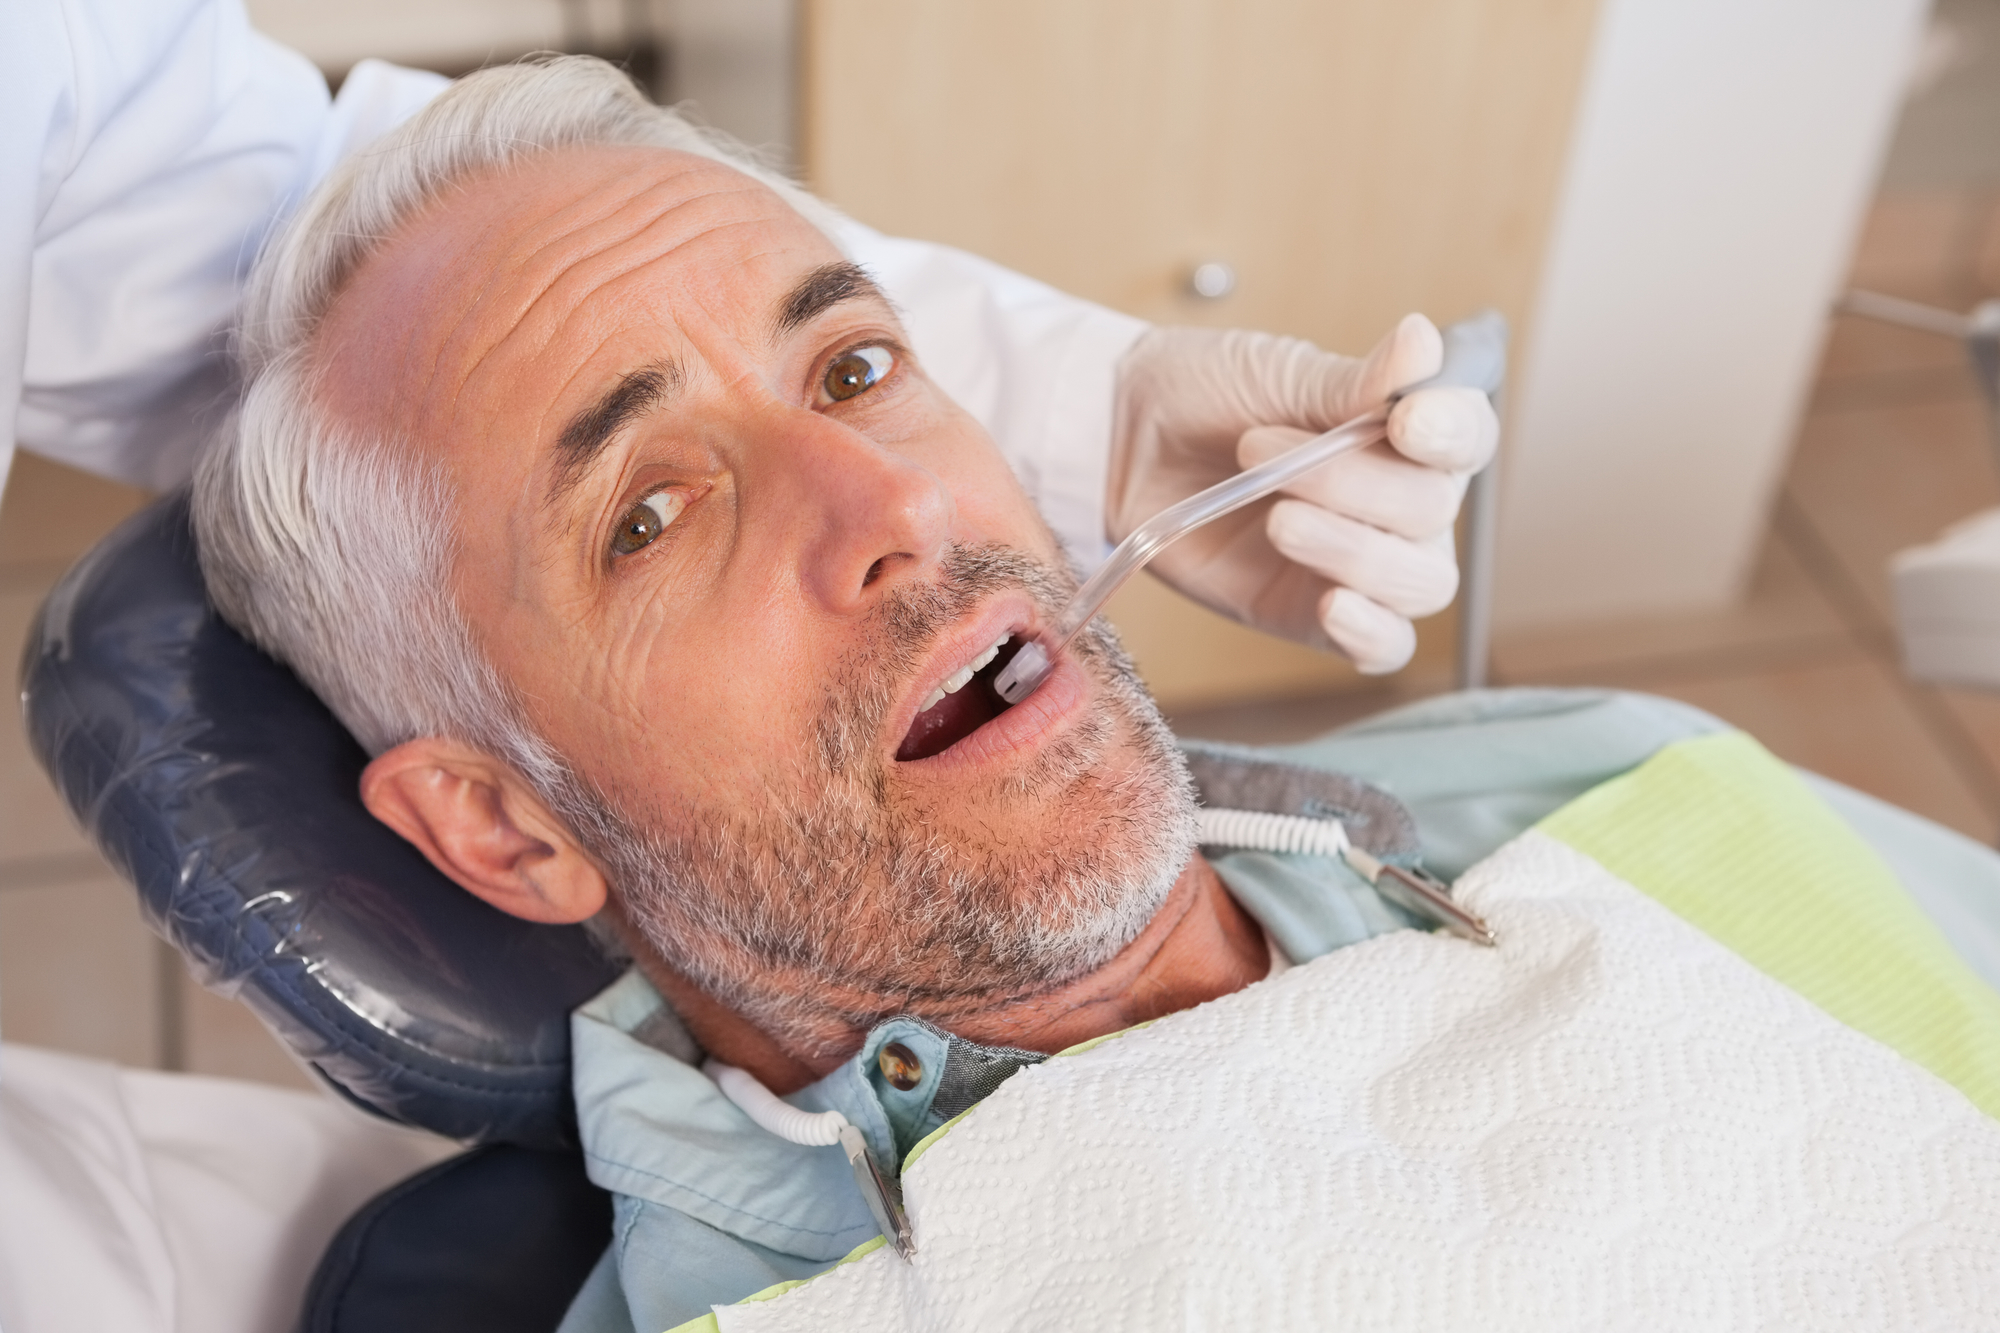 who offers the best oral surgery pembroke pines?